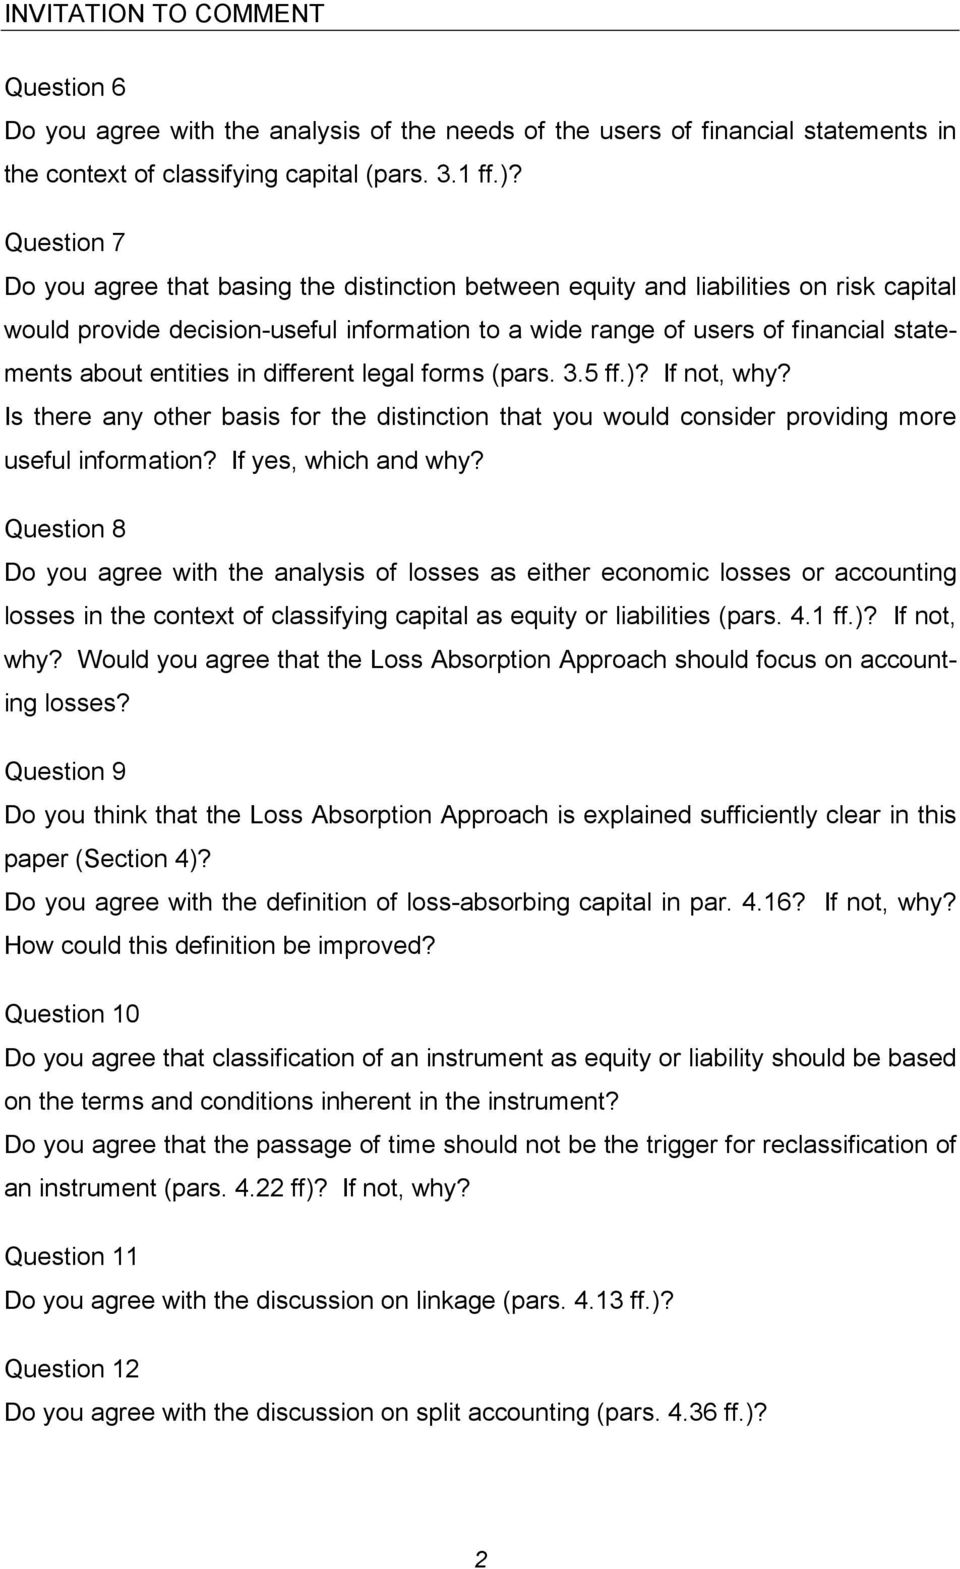 entities in different legal forms (pars. 3.5 ff.)? If not, why? Is there any other basis for the distinction that you would consider providing more useful information? If yes, which and why?